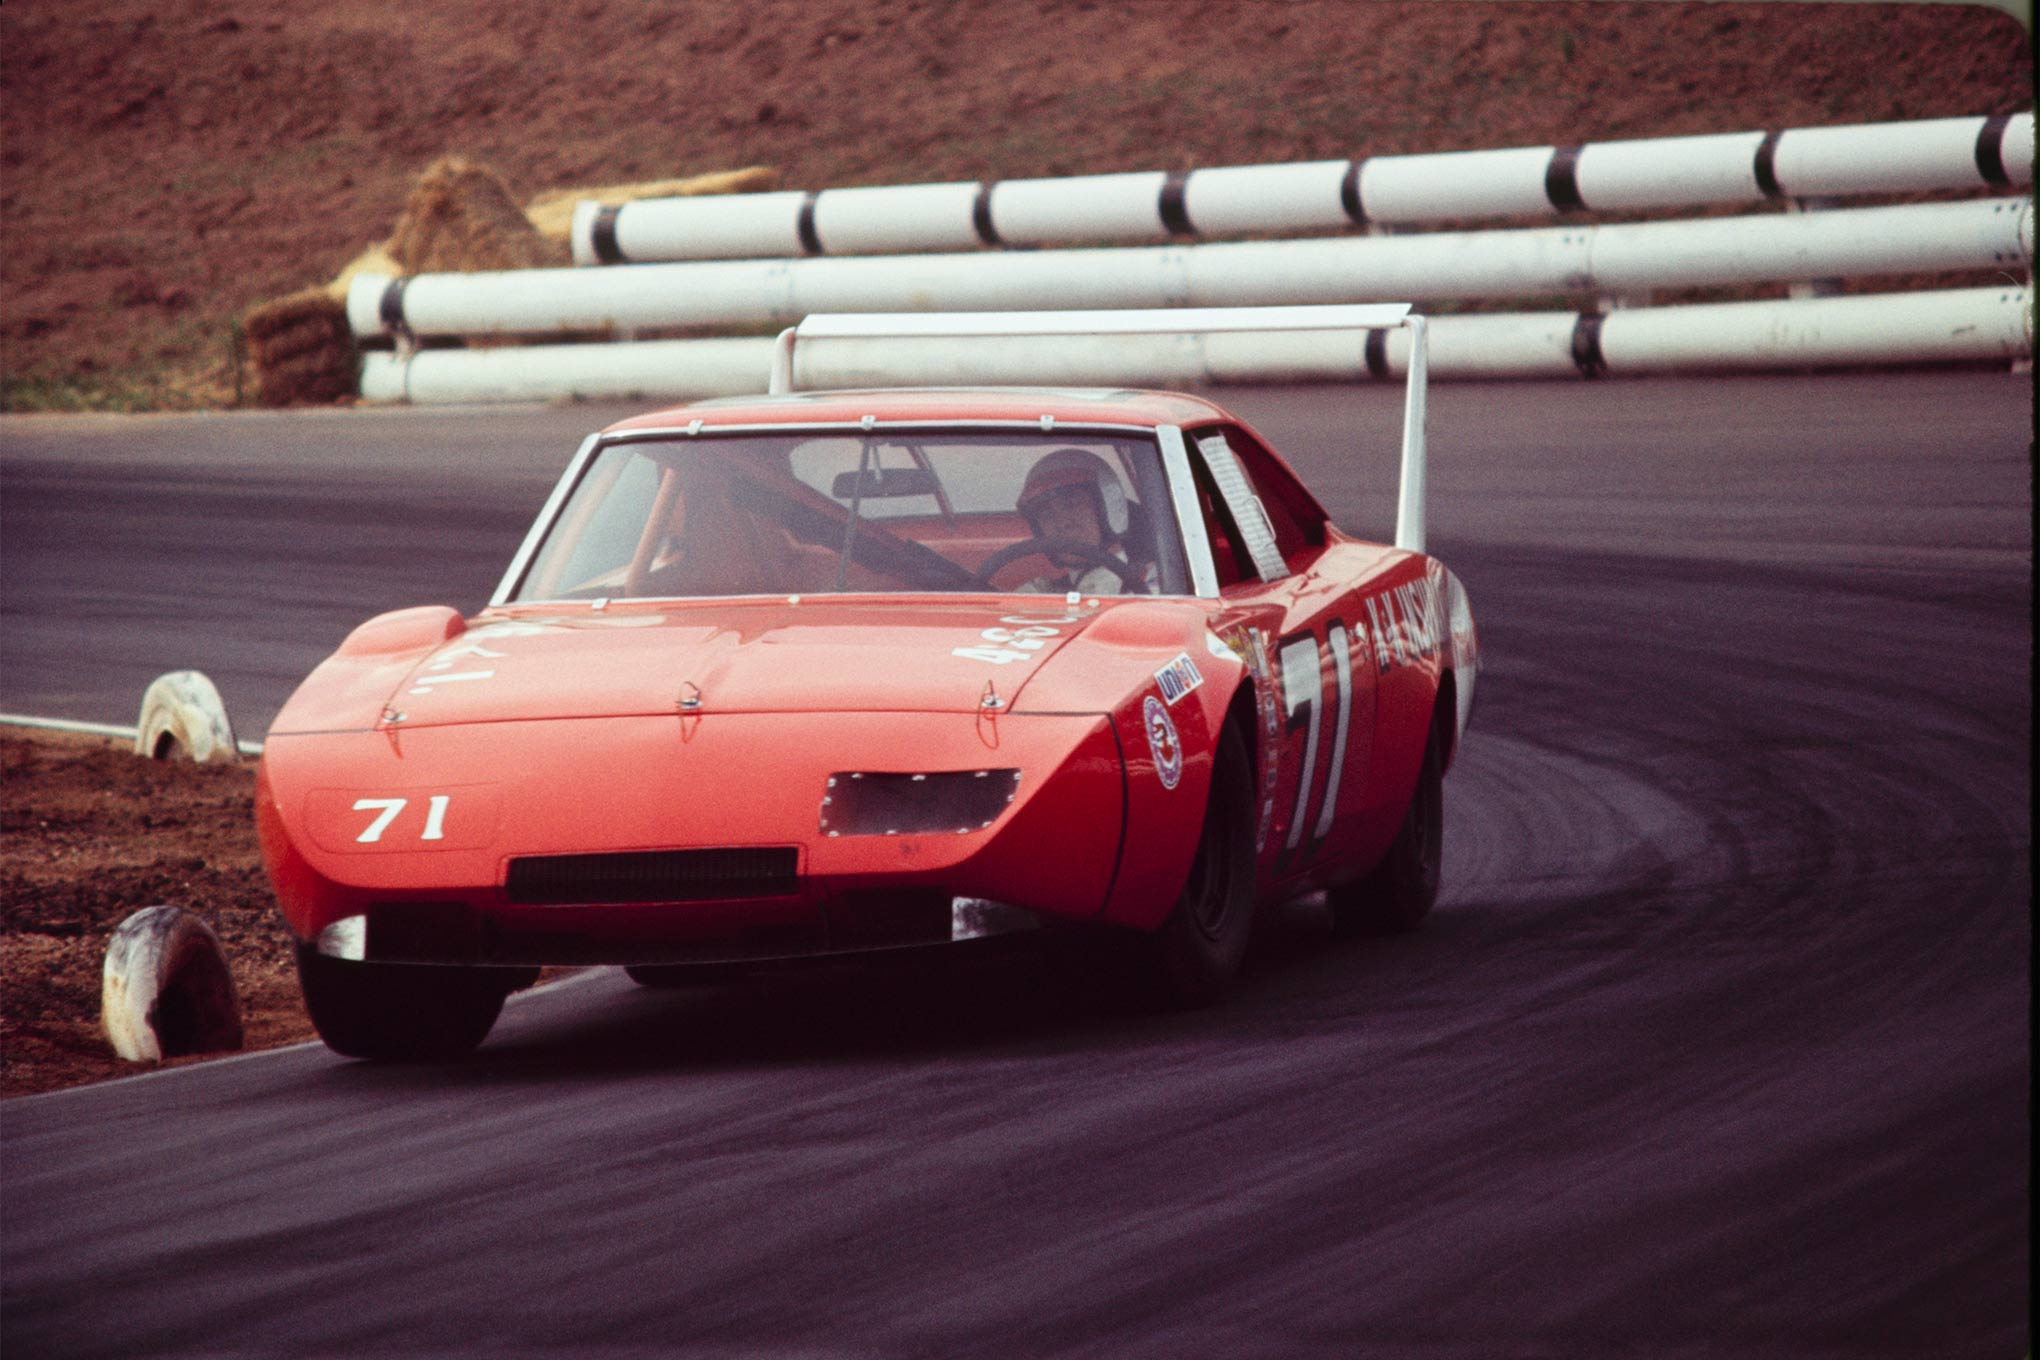 Sawing through the turns at the 1971 Motor Trend 500 at Riverside International Raceway, where after 191 laps Bobby Isaac and the Daytona came in Fourth Place. Only 12 of the 40 starters finished the race.